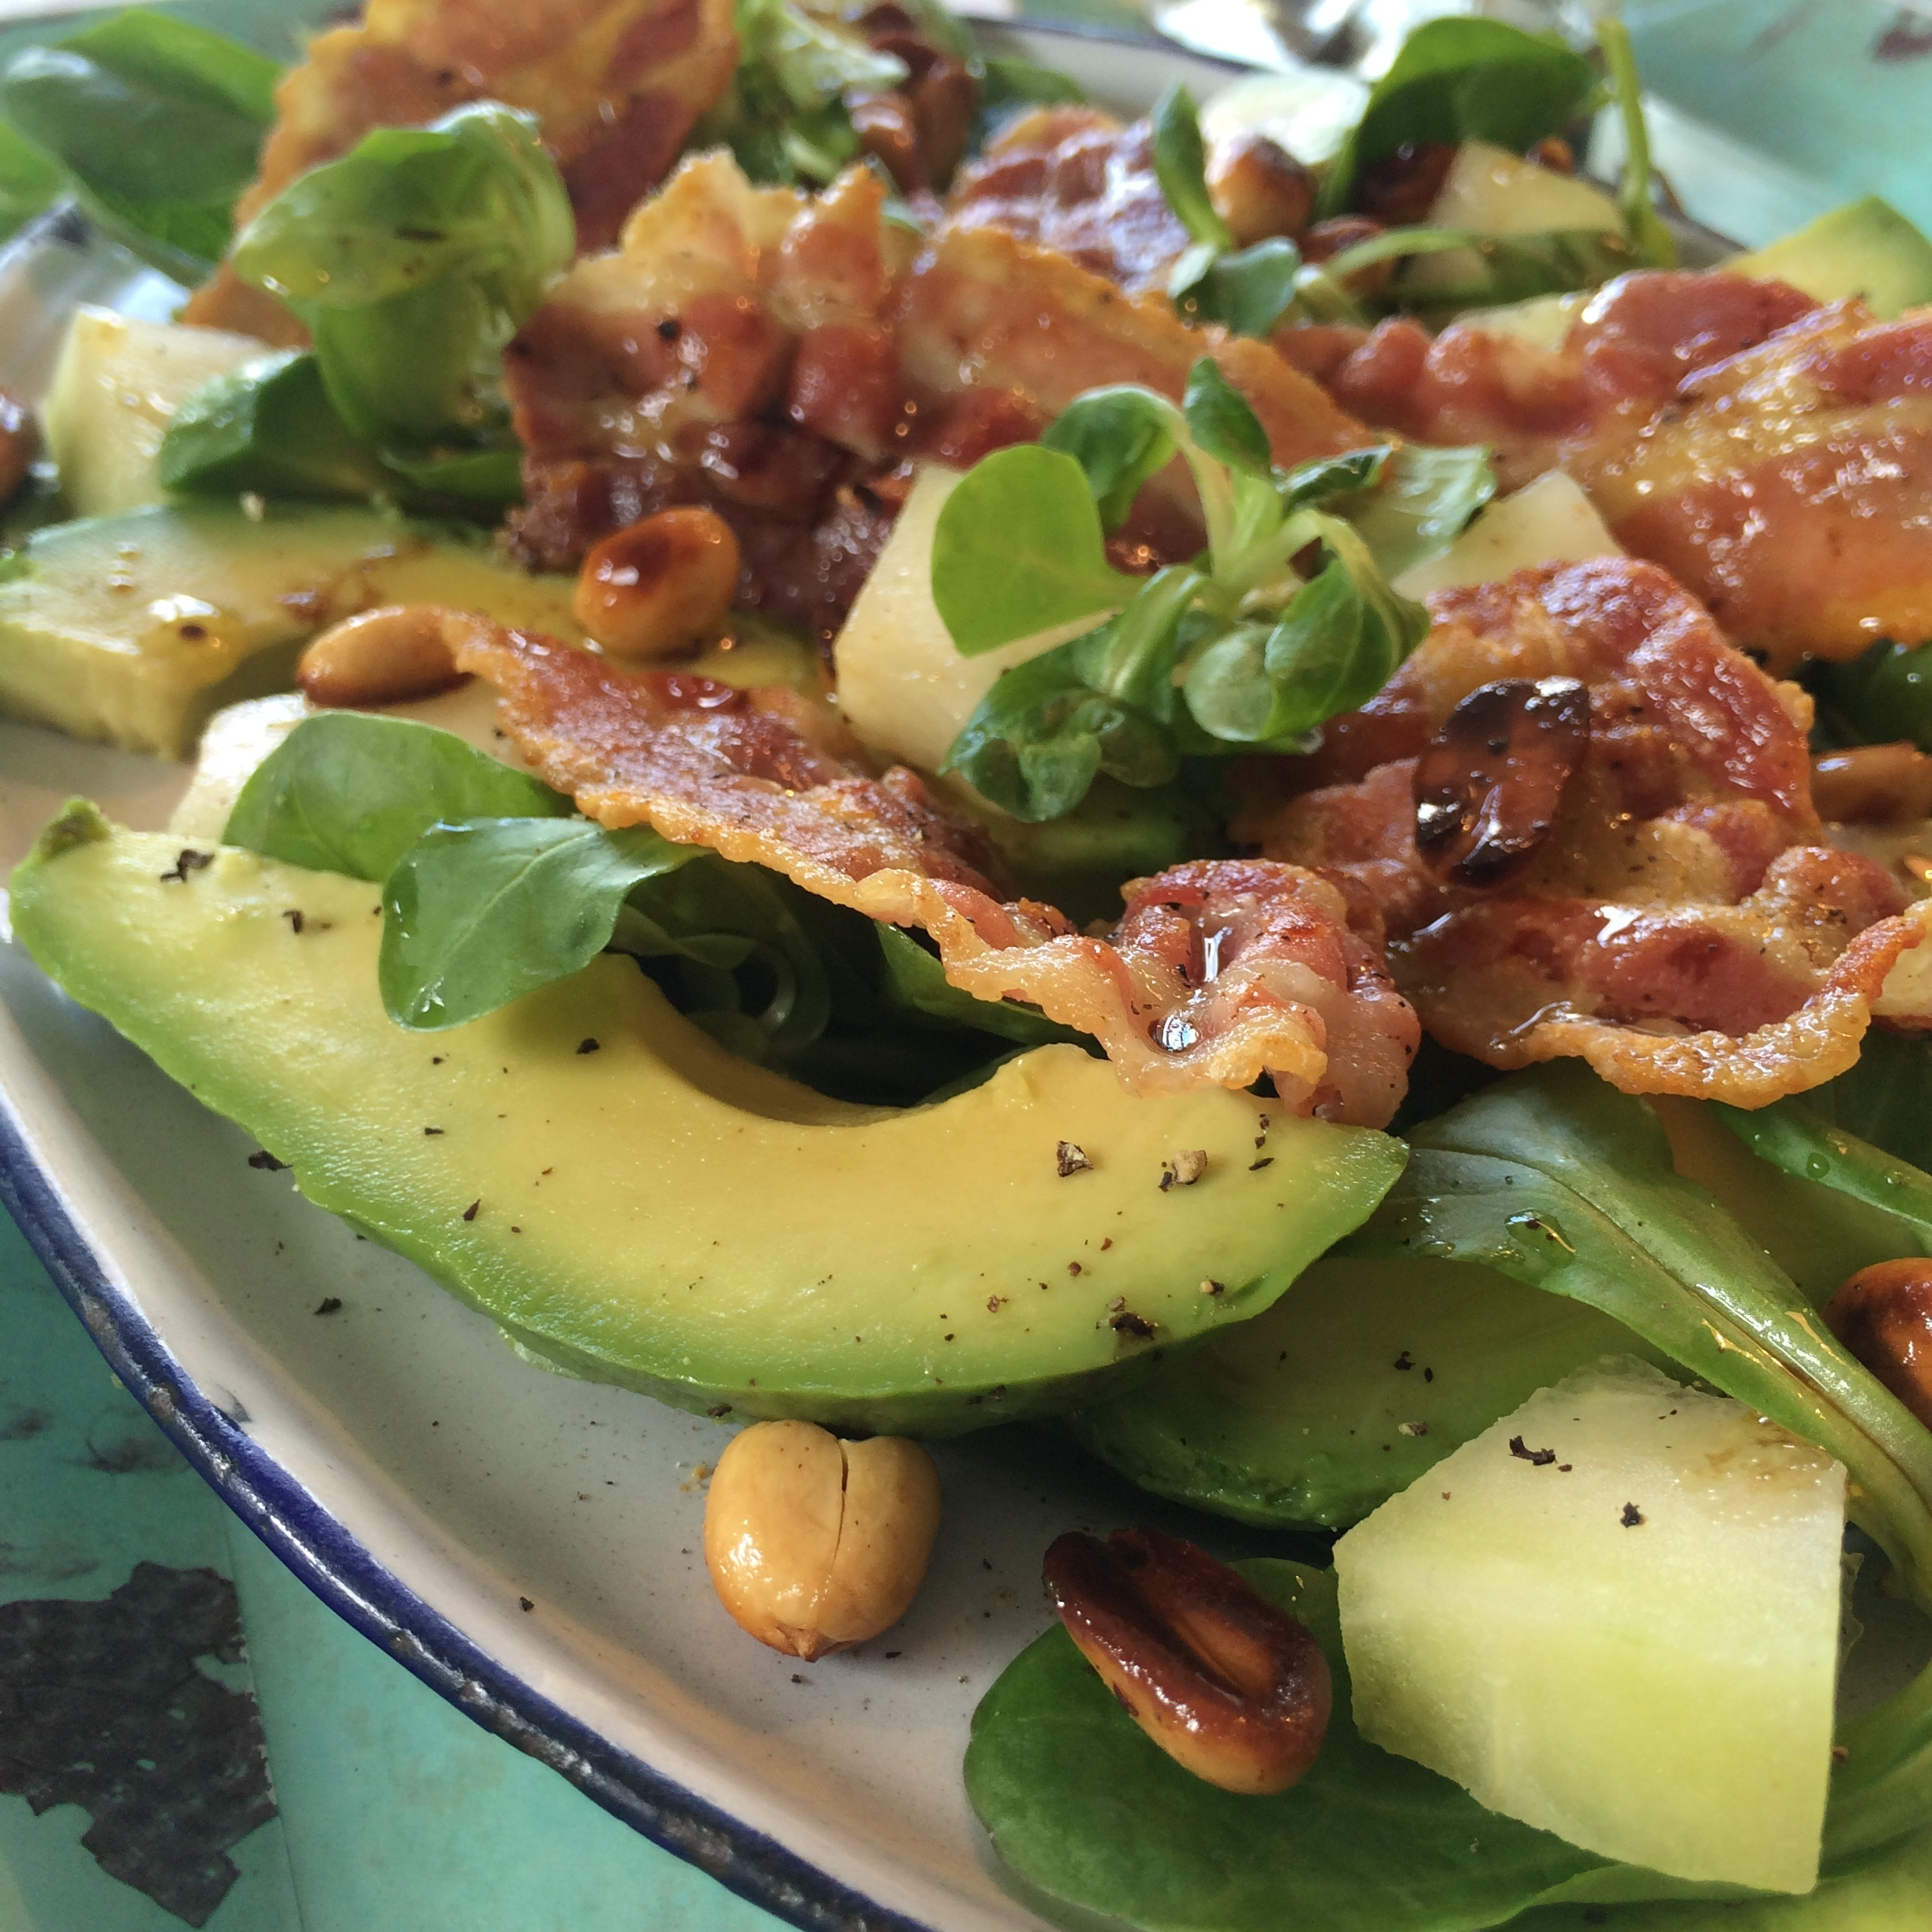 AVOCADO, BACON OG MELON SALAT